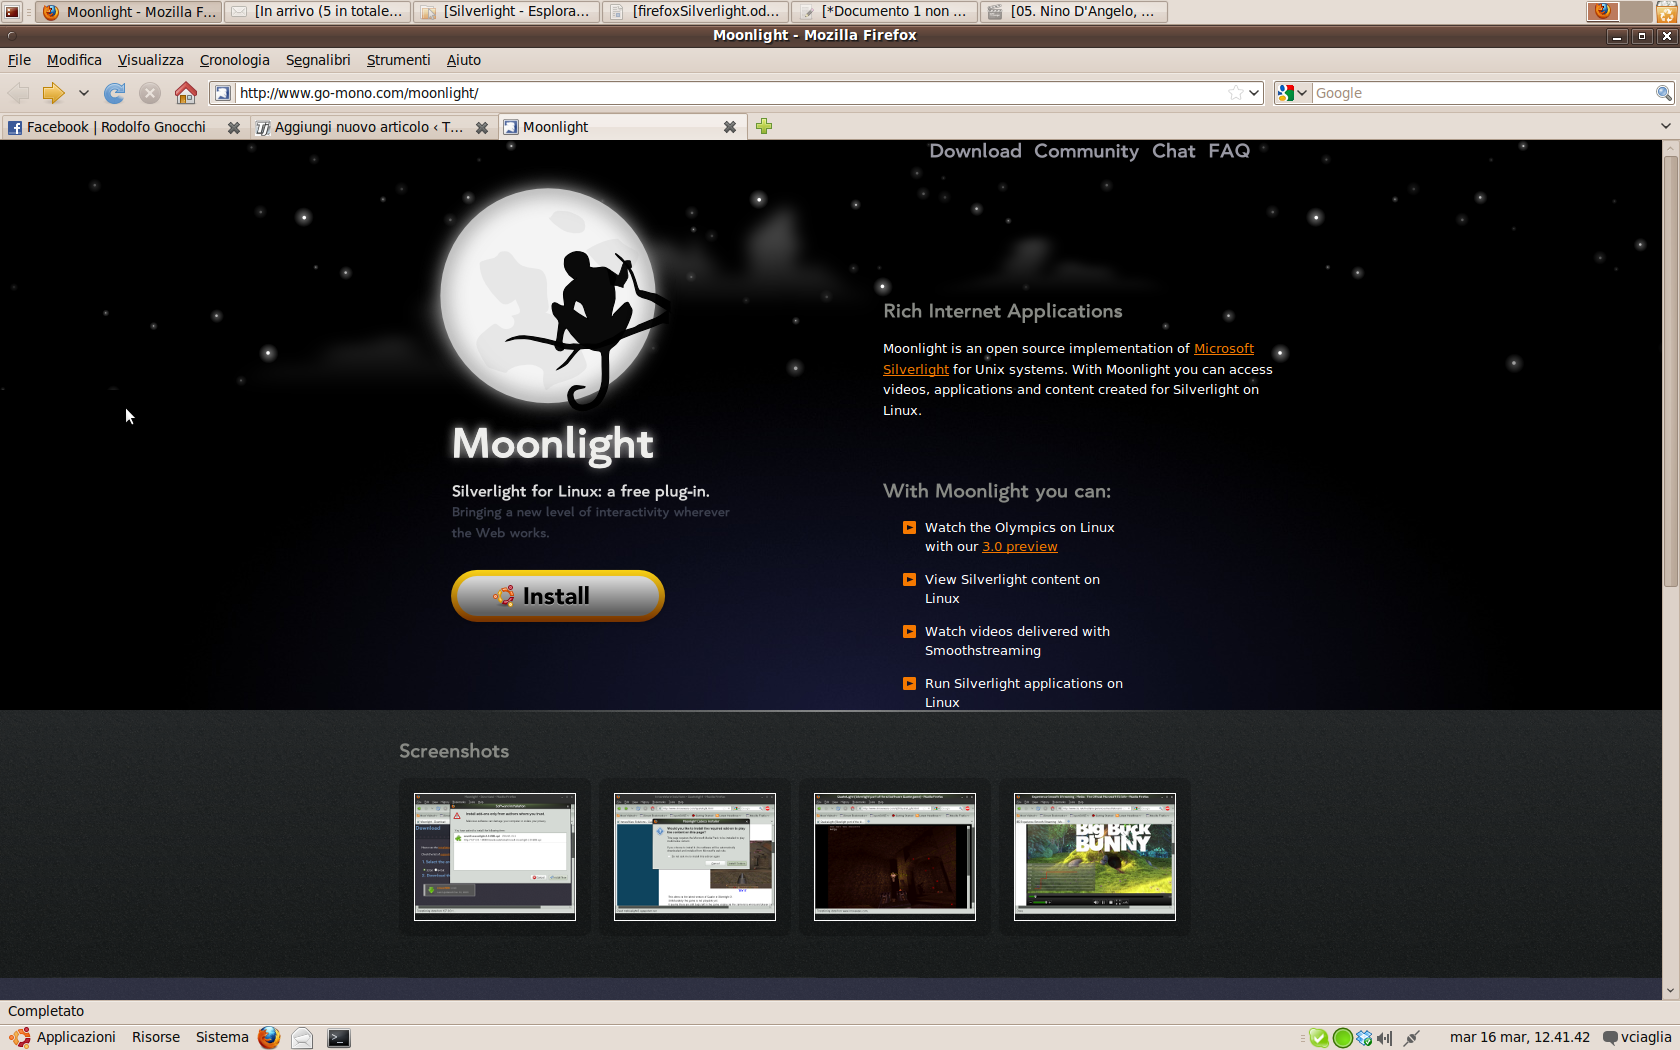 Guardare RAI.tv su GNU/Linux: installiamo Moonlight